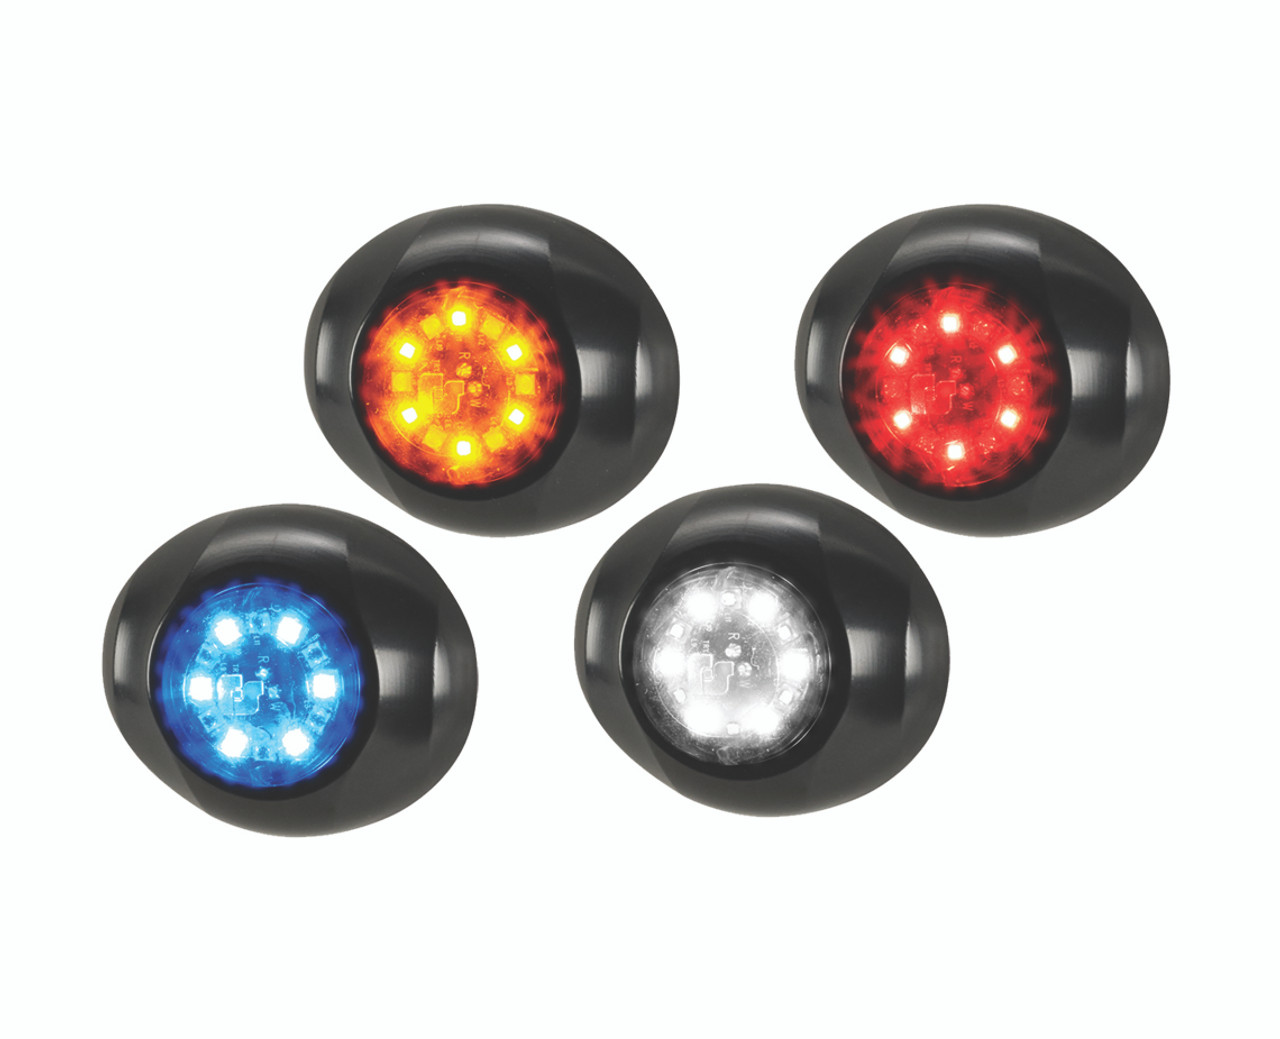 Federal Signal Head-light Tail-Light Corner LED System 416900, two color option, includes surface mount flange, 12 LED per head, sold as 1